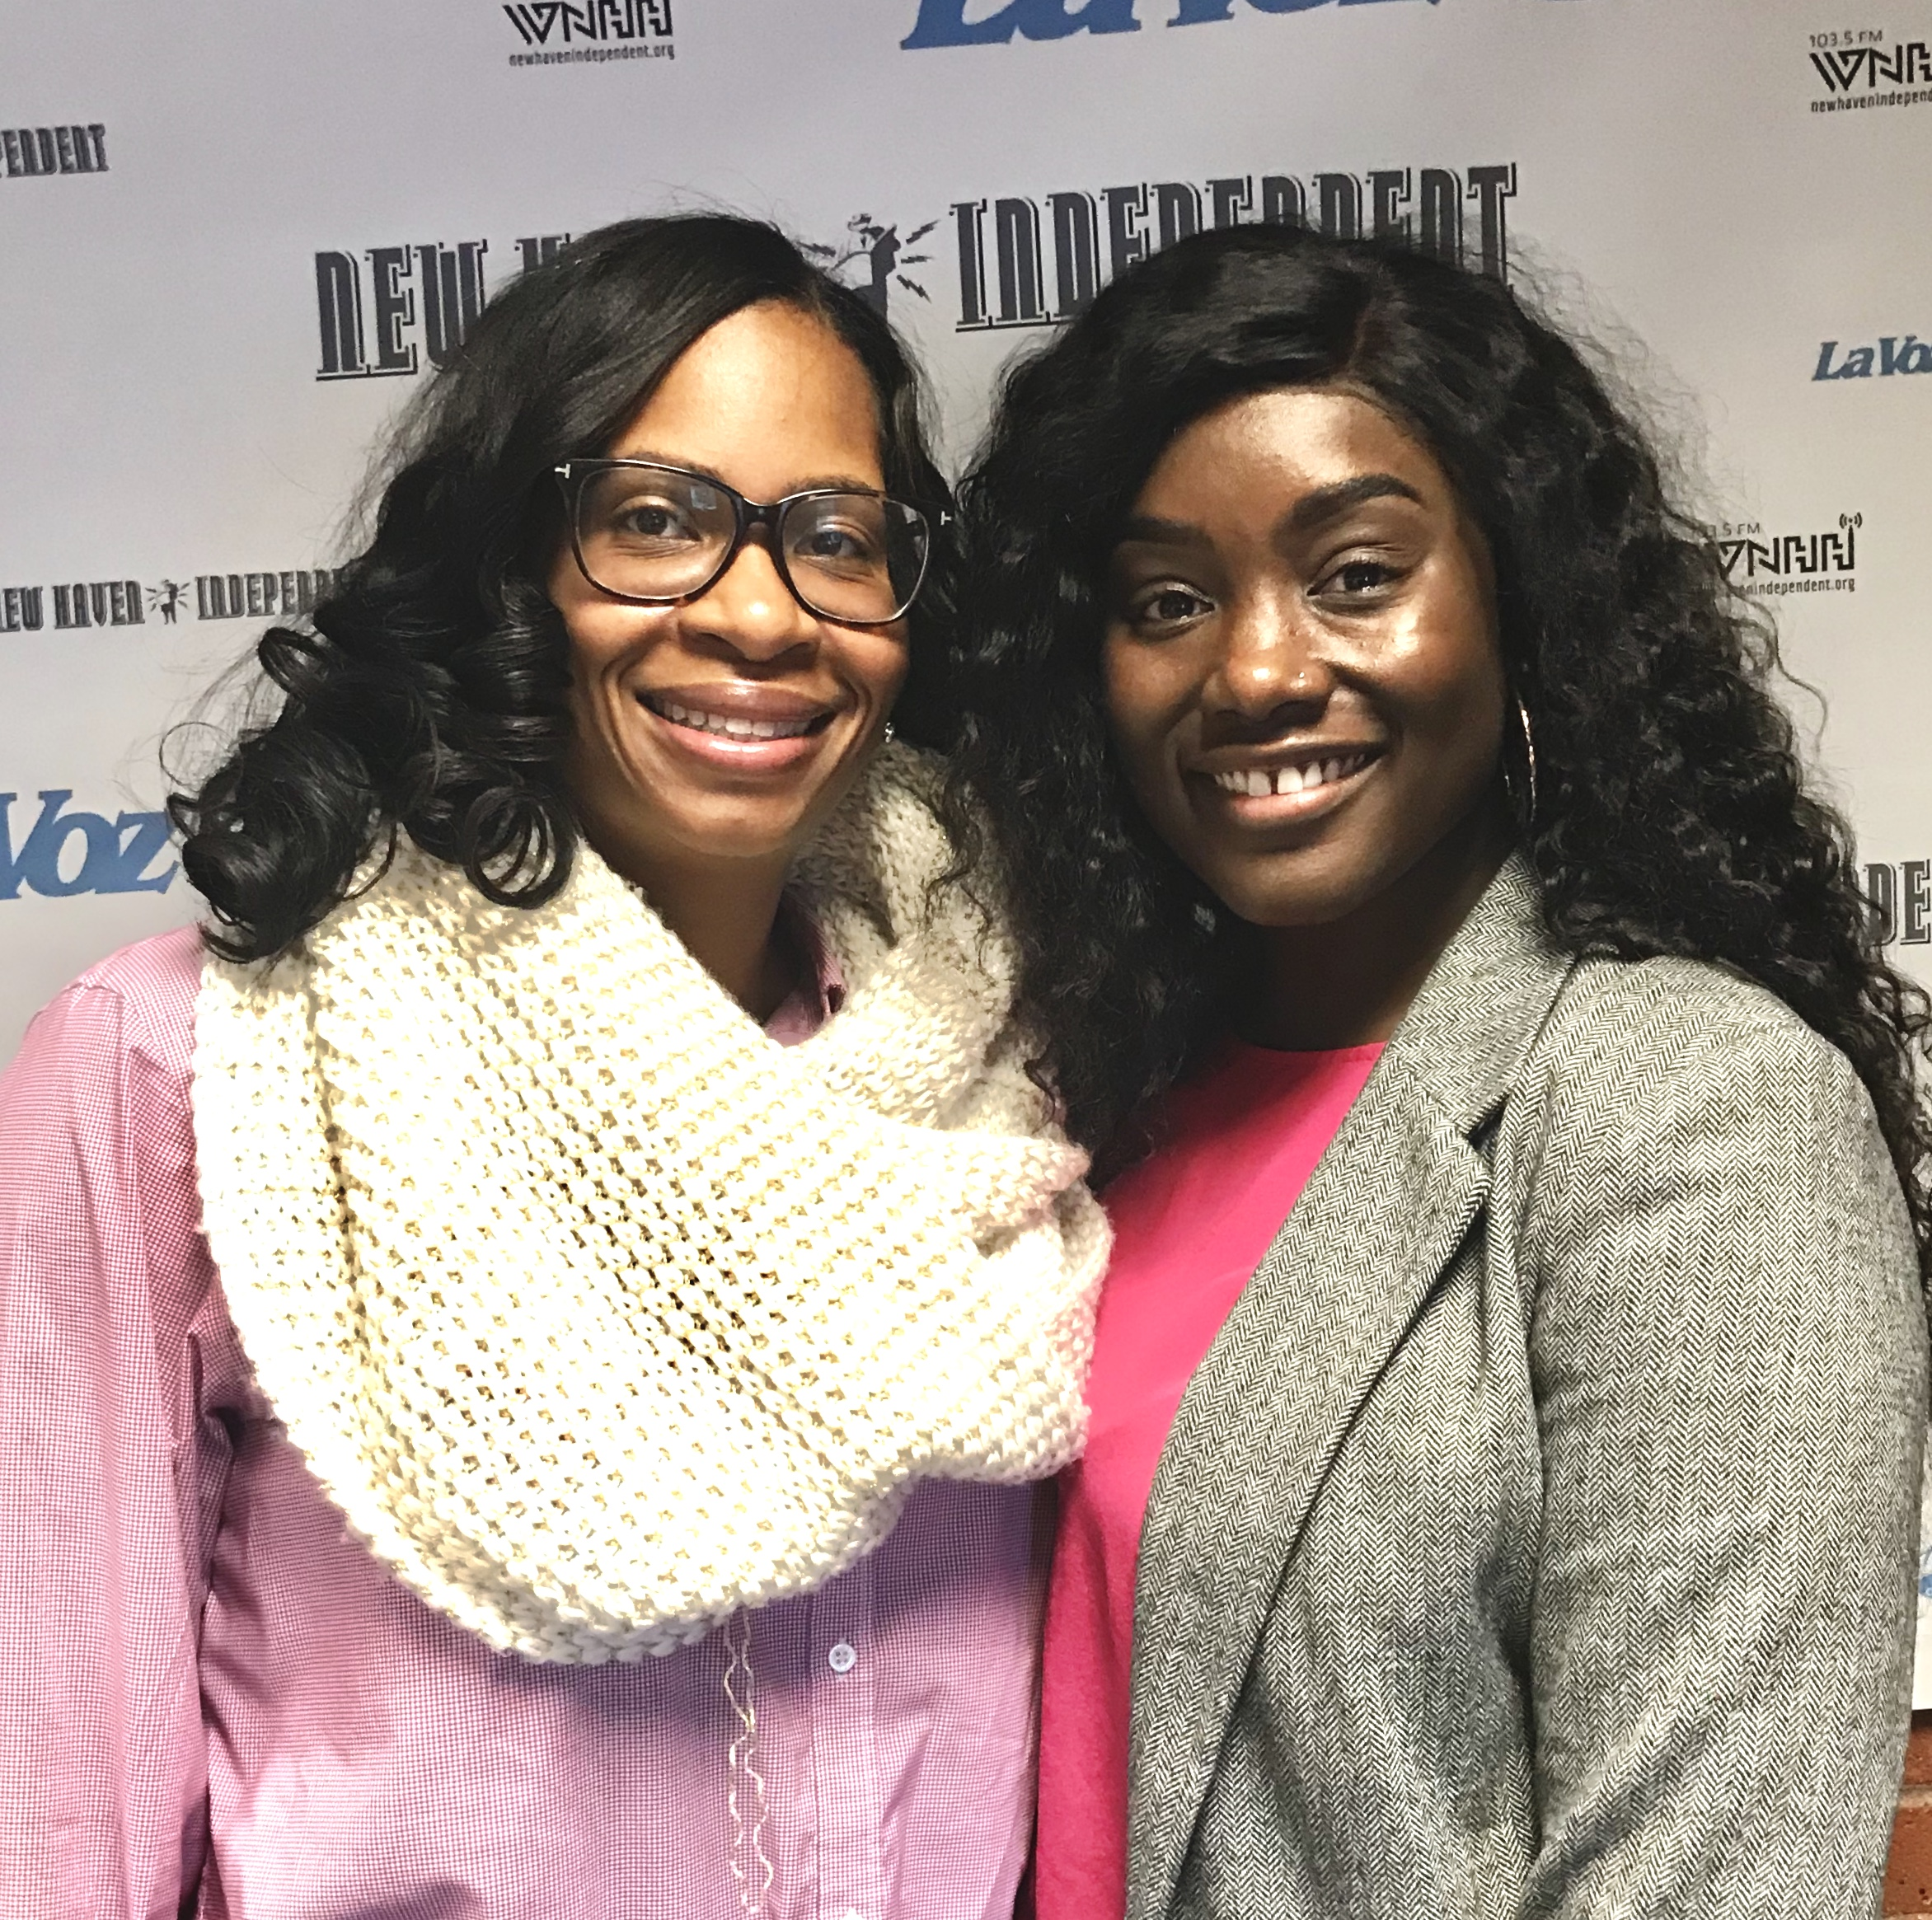 When's the right time to make the jump from your job to your passion? Is it necessary to make the jump at all? Mercy Quaye talks to Dr. Chaka Felder-McEntire, Founder and Executive Director of Higher Heights Youth Empowerment Program to answer these and other questions.